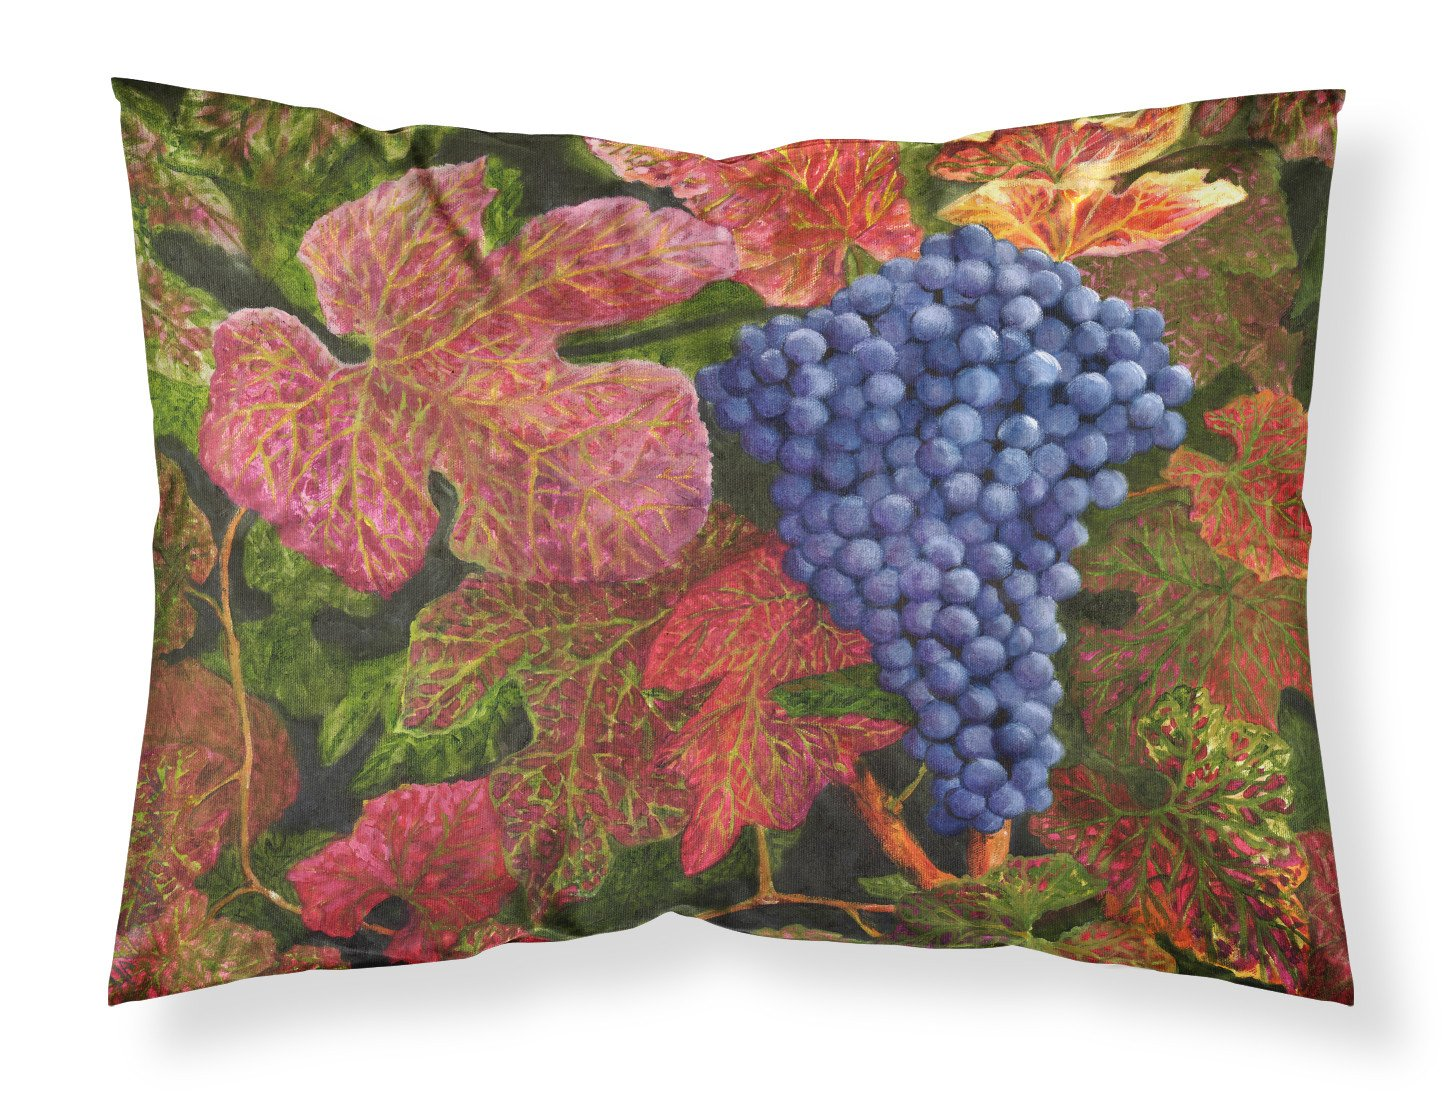 Buy this Grapes Of Joy by Malenda Trick Fabric Standard Pillowcase TMTR0151PILLOWCASE